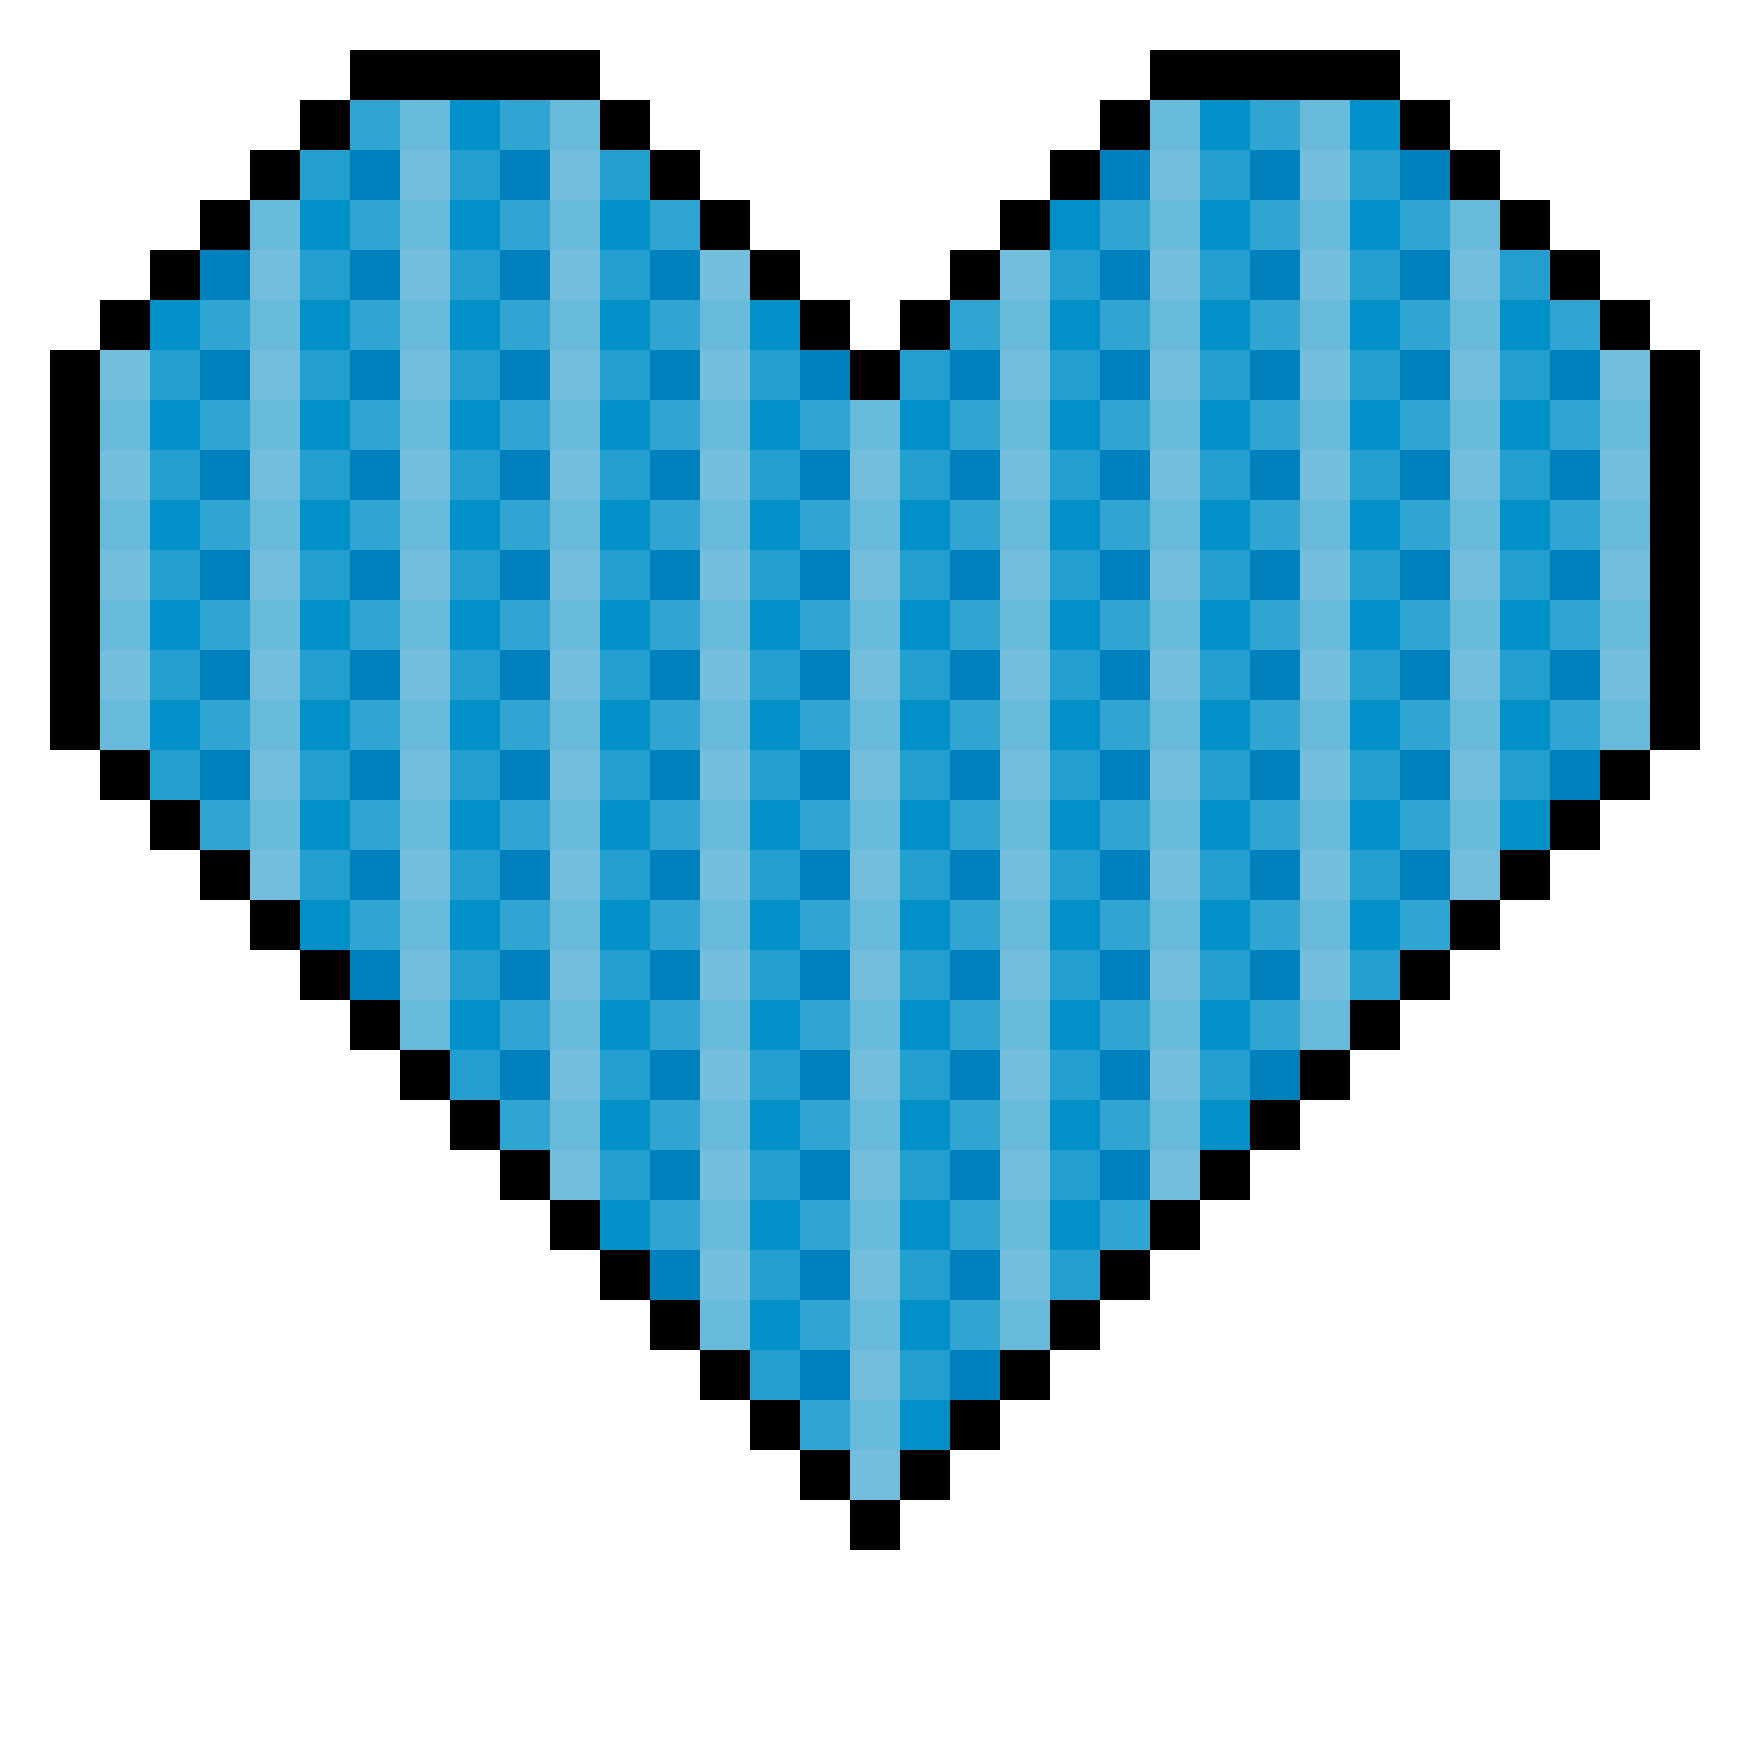 Pixel art . Minecraft clipart minecraft heart